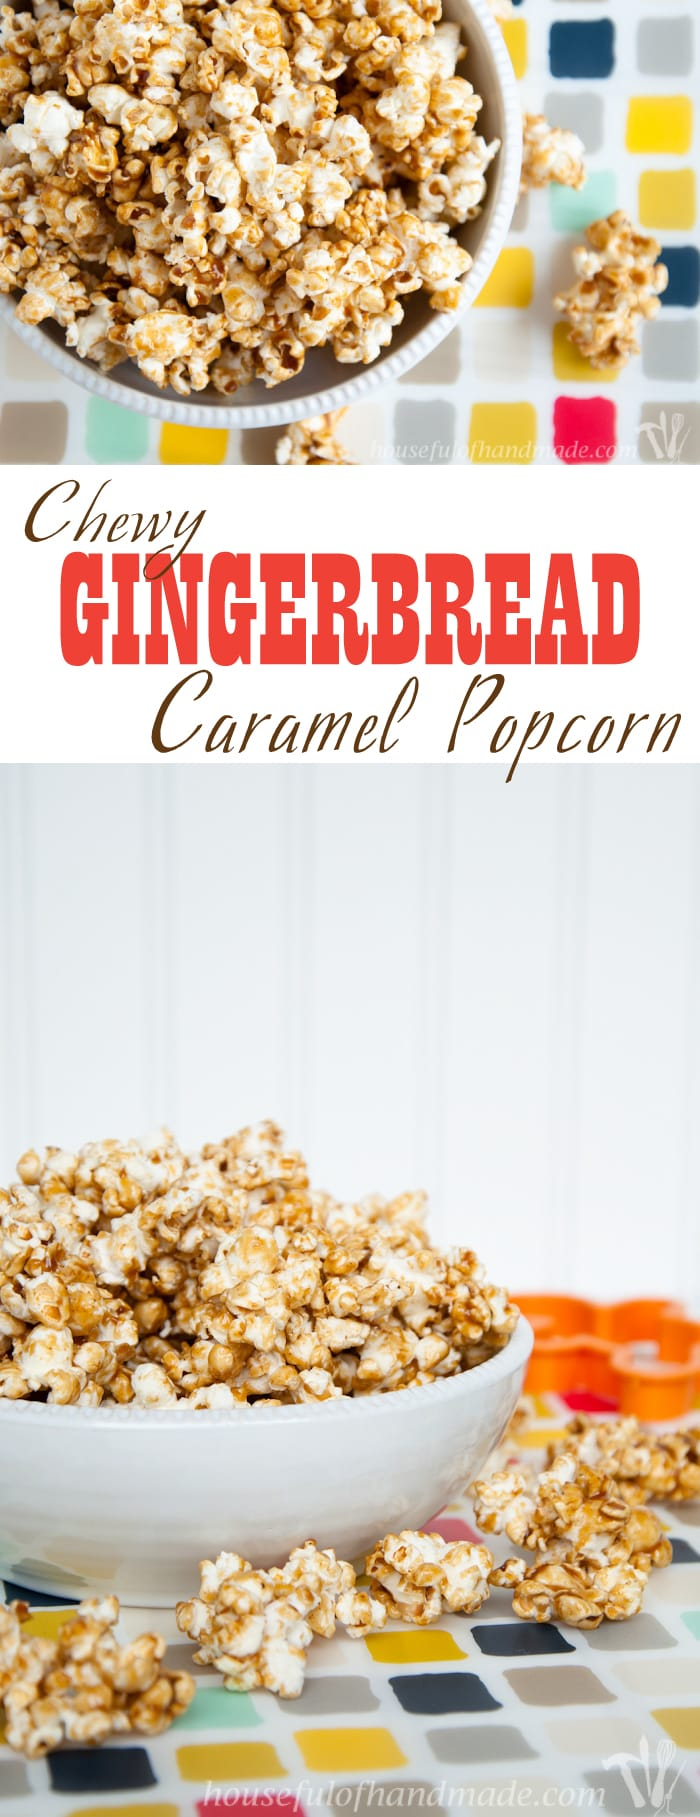 Celebrate Christmas with this delicious and chewy gingerbread caramel popcorn. You can whip up a batch in 10 minutes to take to your next party or for the perfect neighbor gifts. | Housefulofhandmade.com